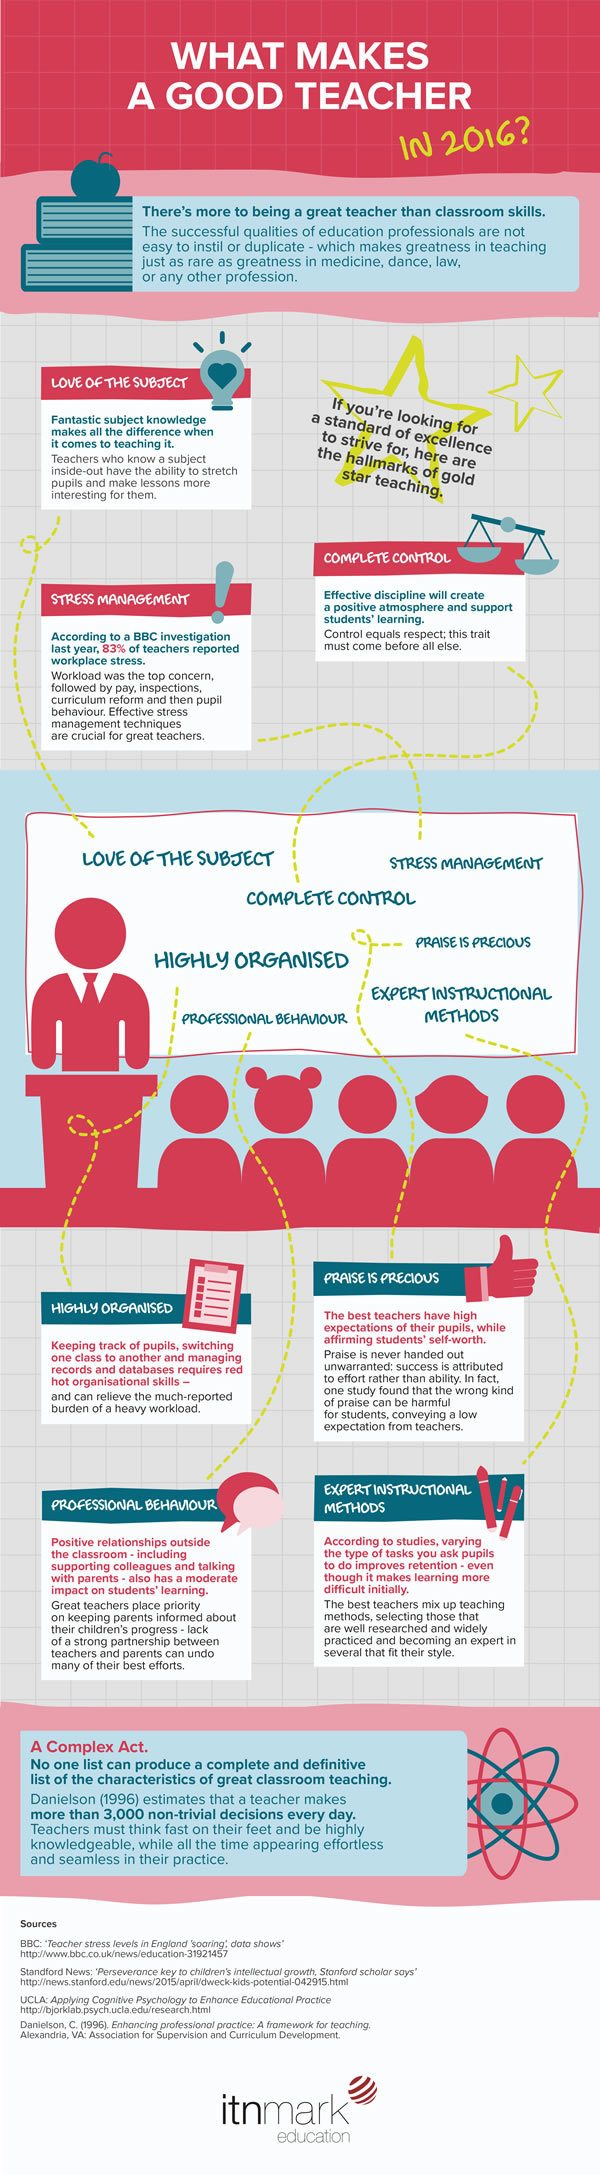 What Makes a Good Teacher in 2016 Infographic